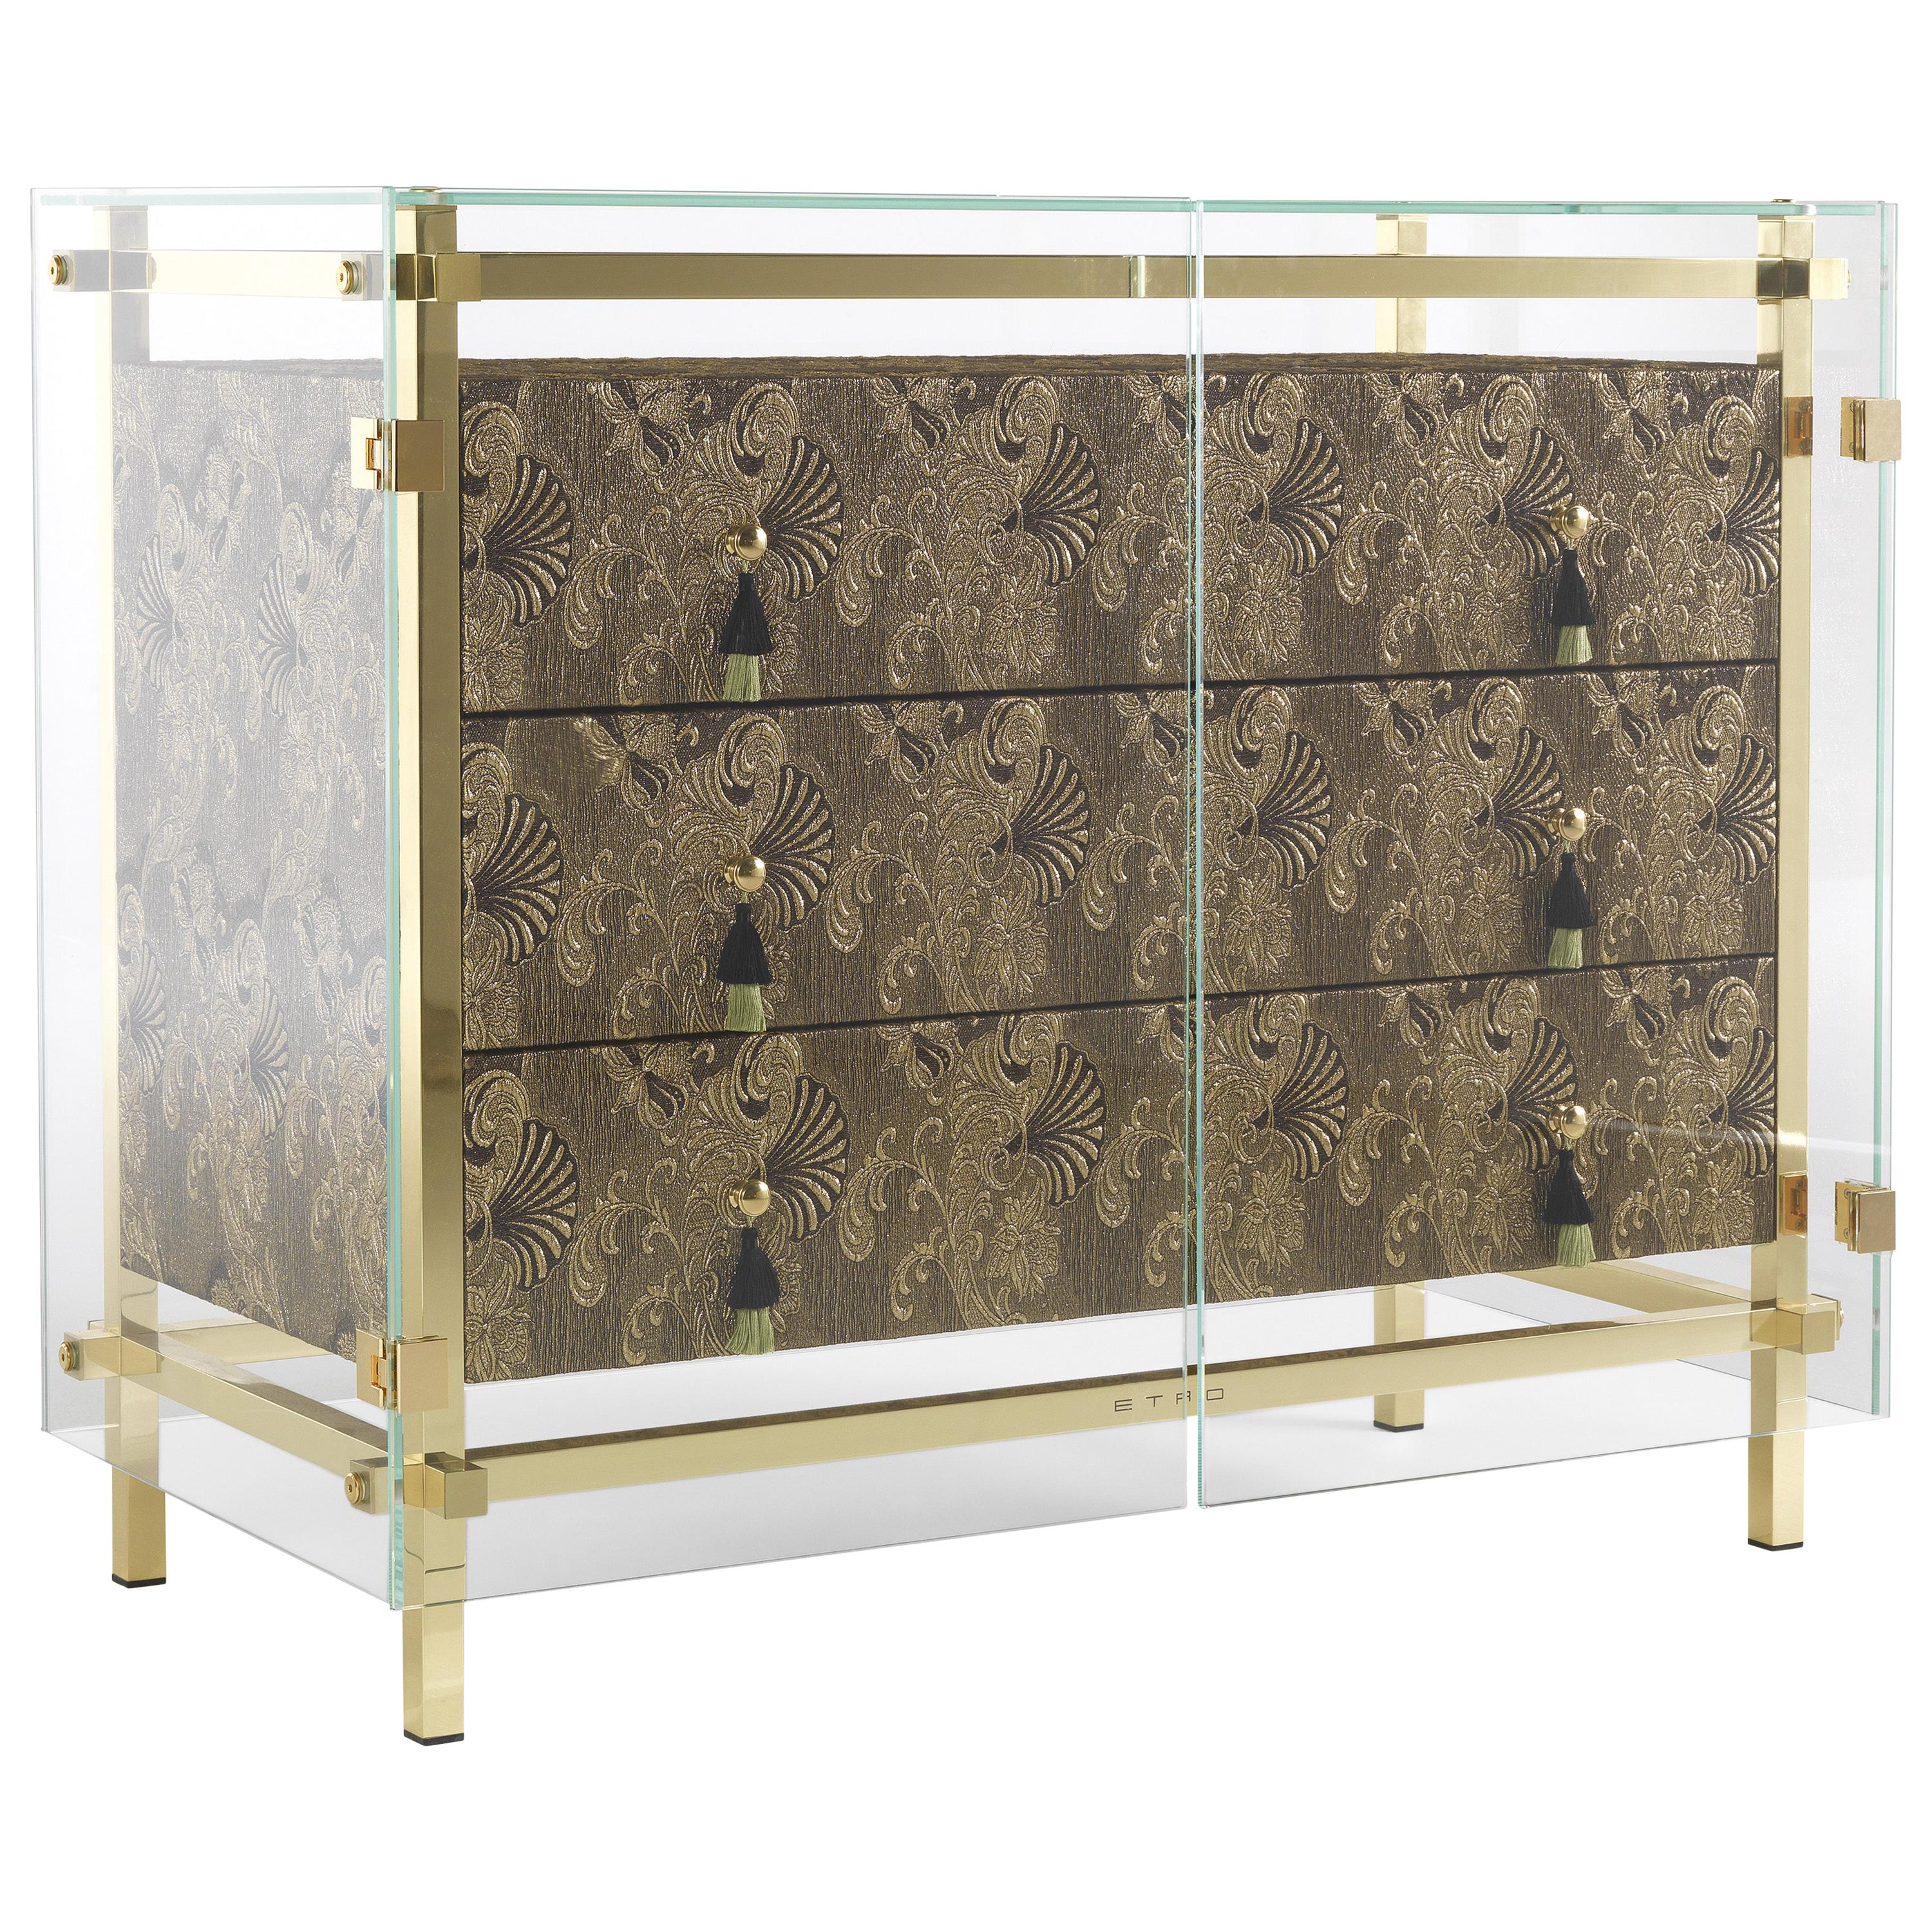 Etro Home Interiors Delhi Chest of Drawers in Fabric and Polished Brass